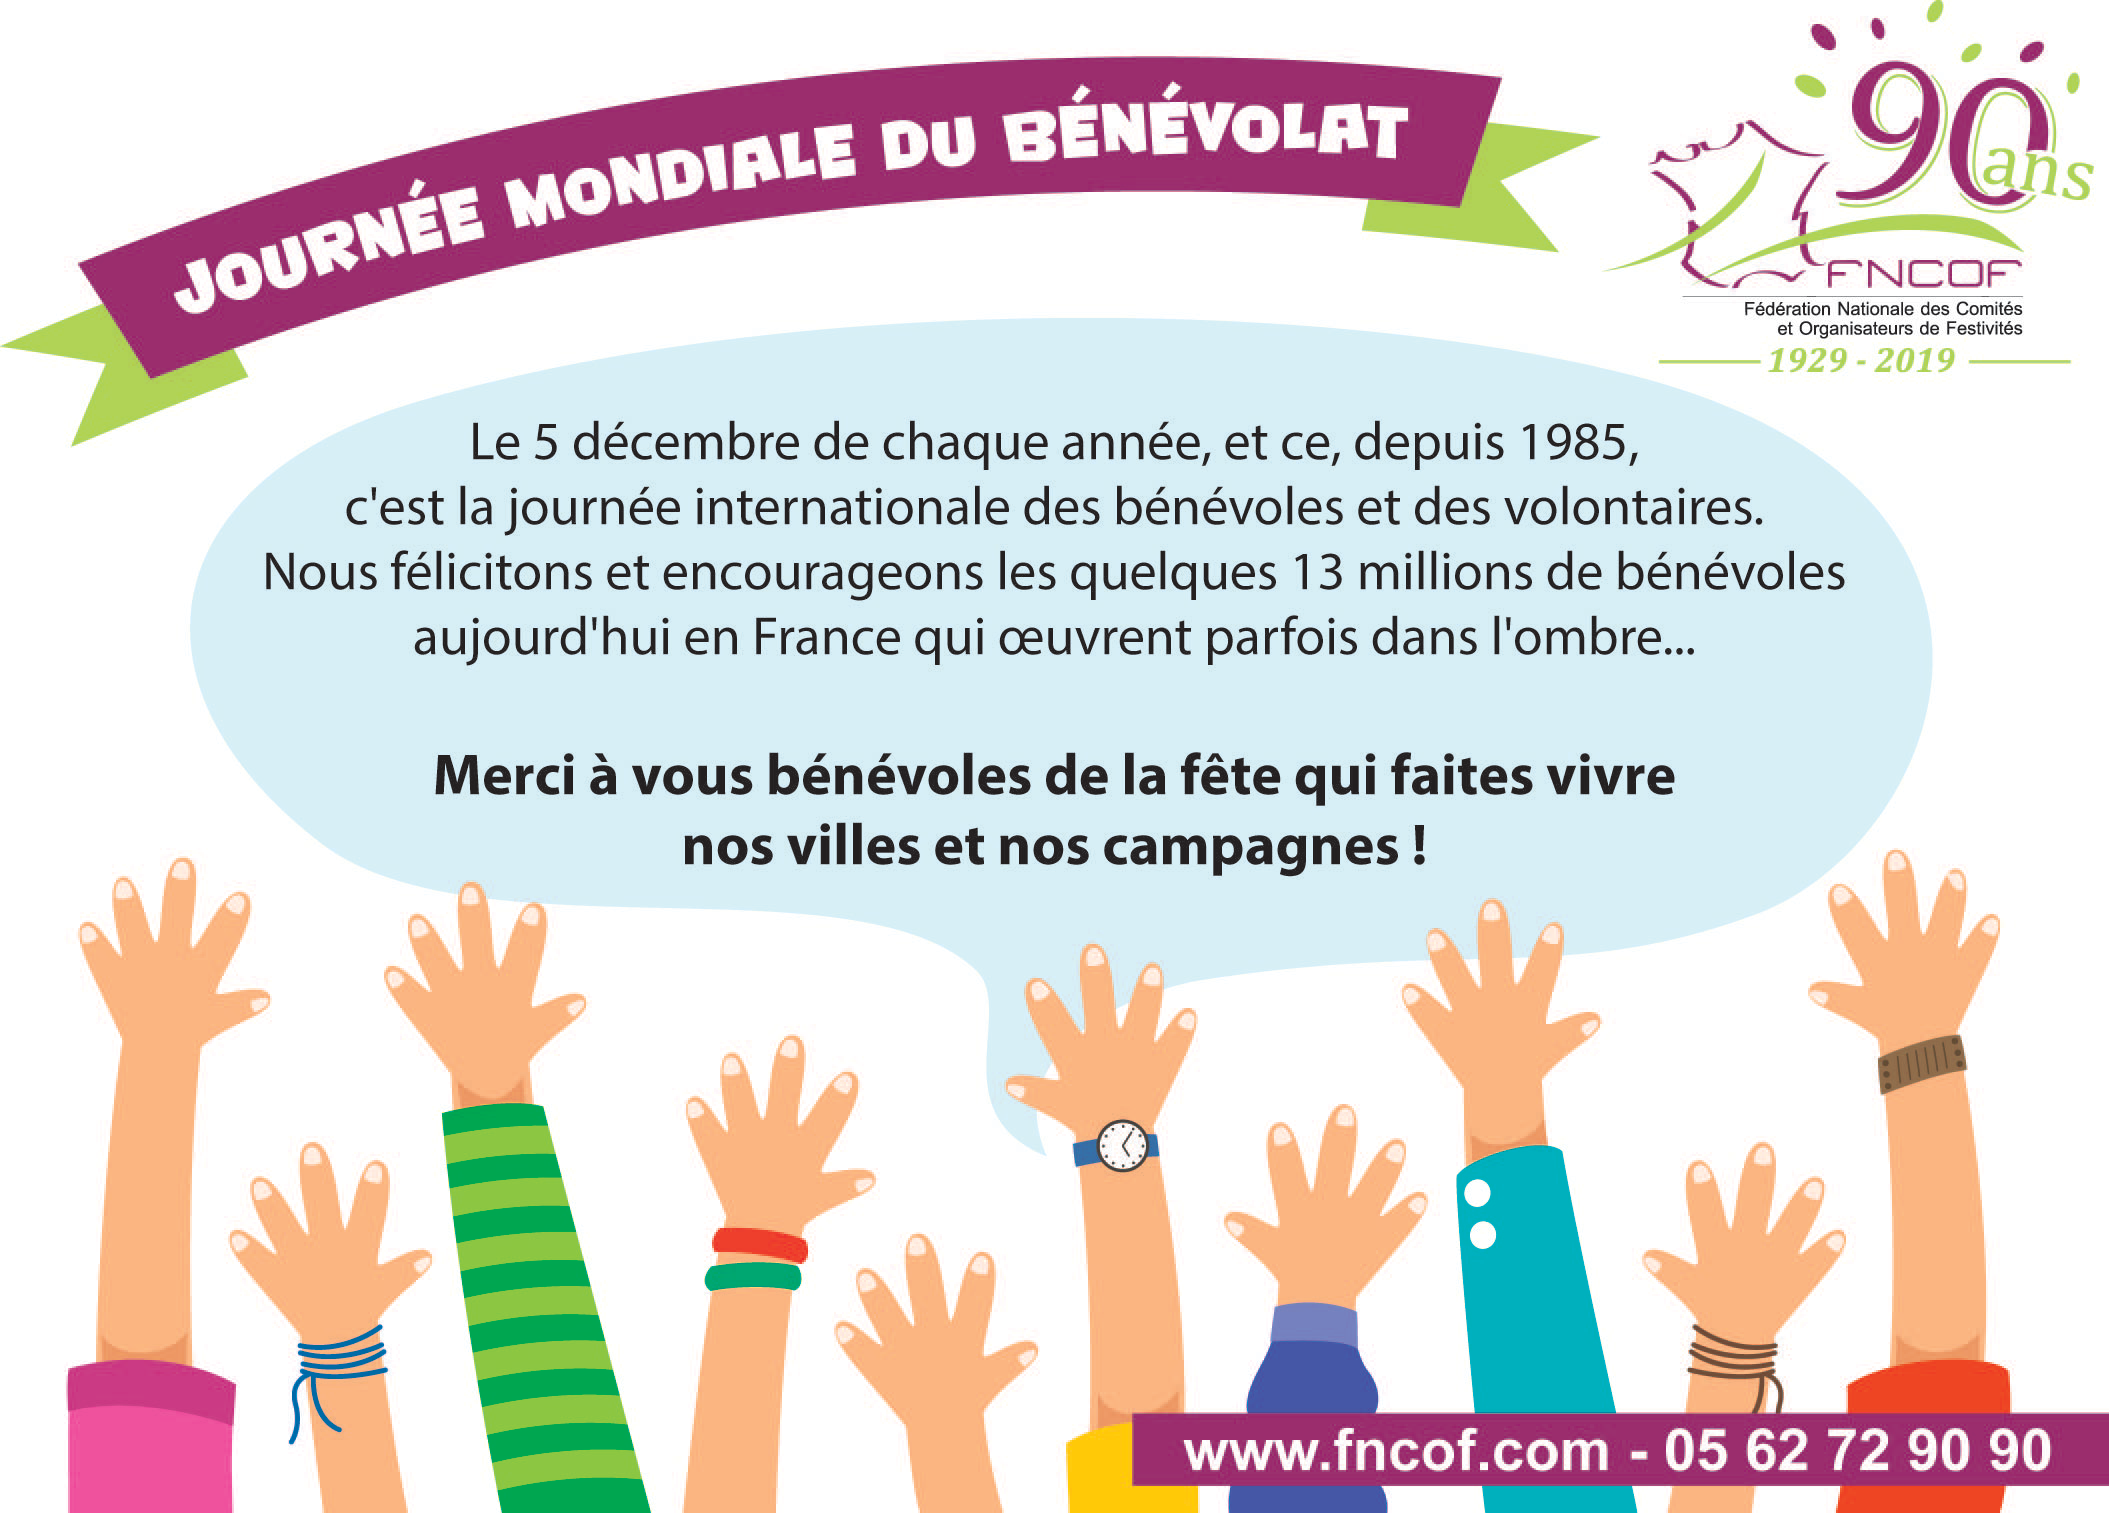 journee-mondiale-du-benevolat